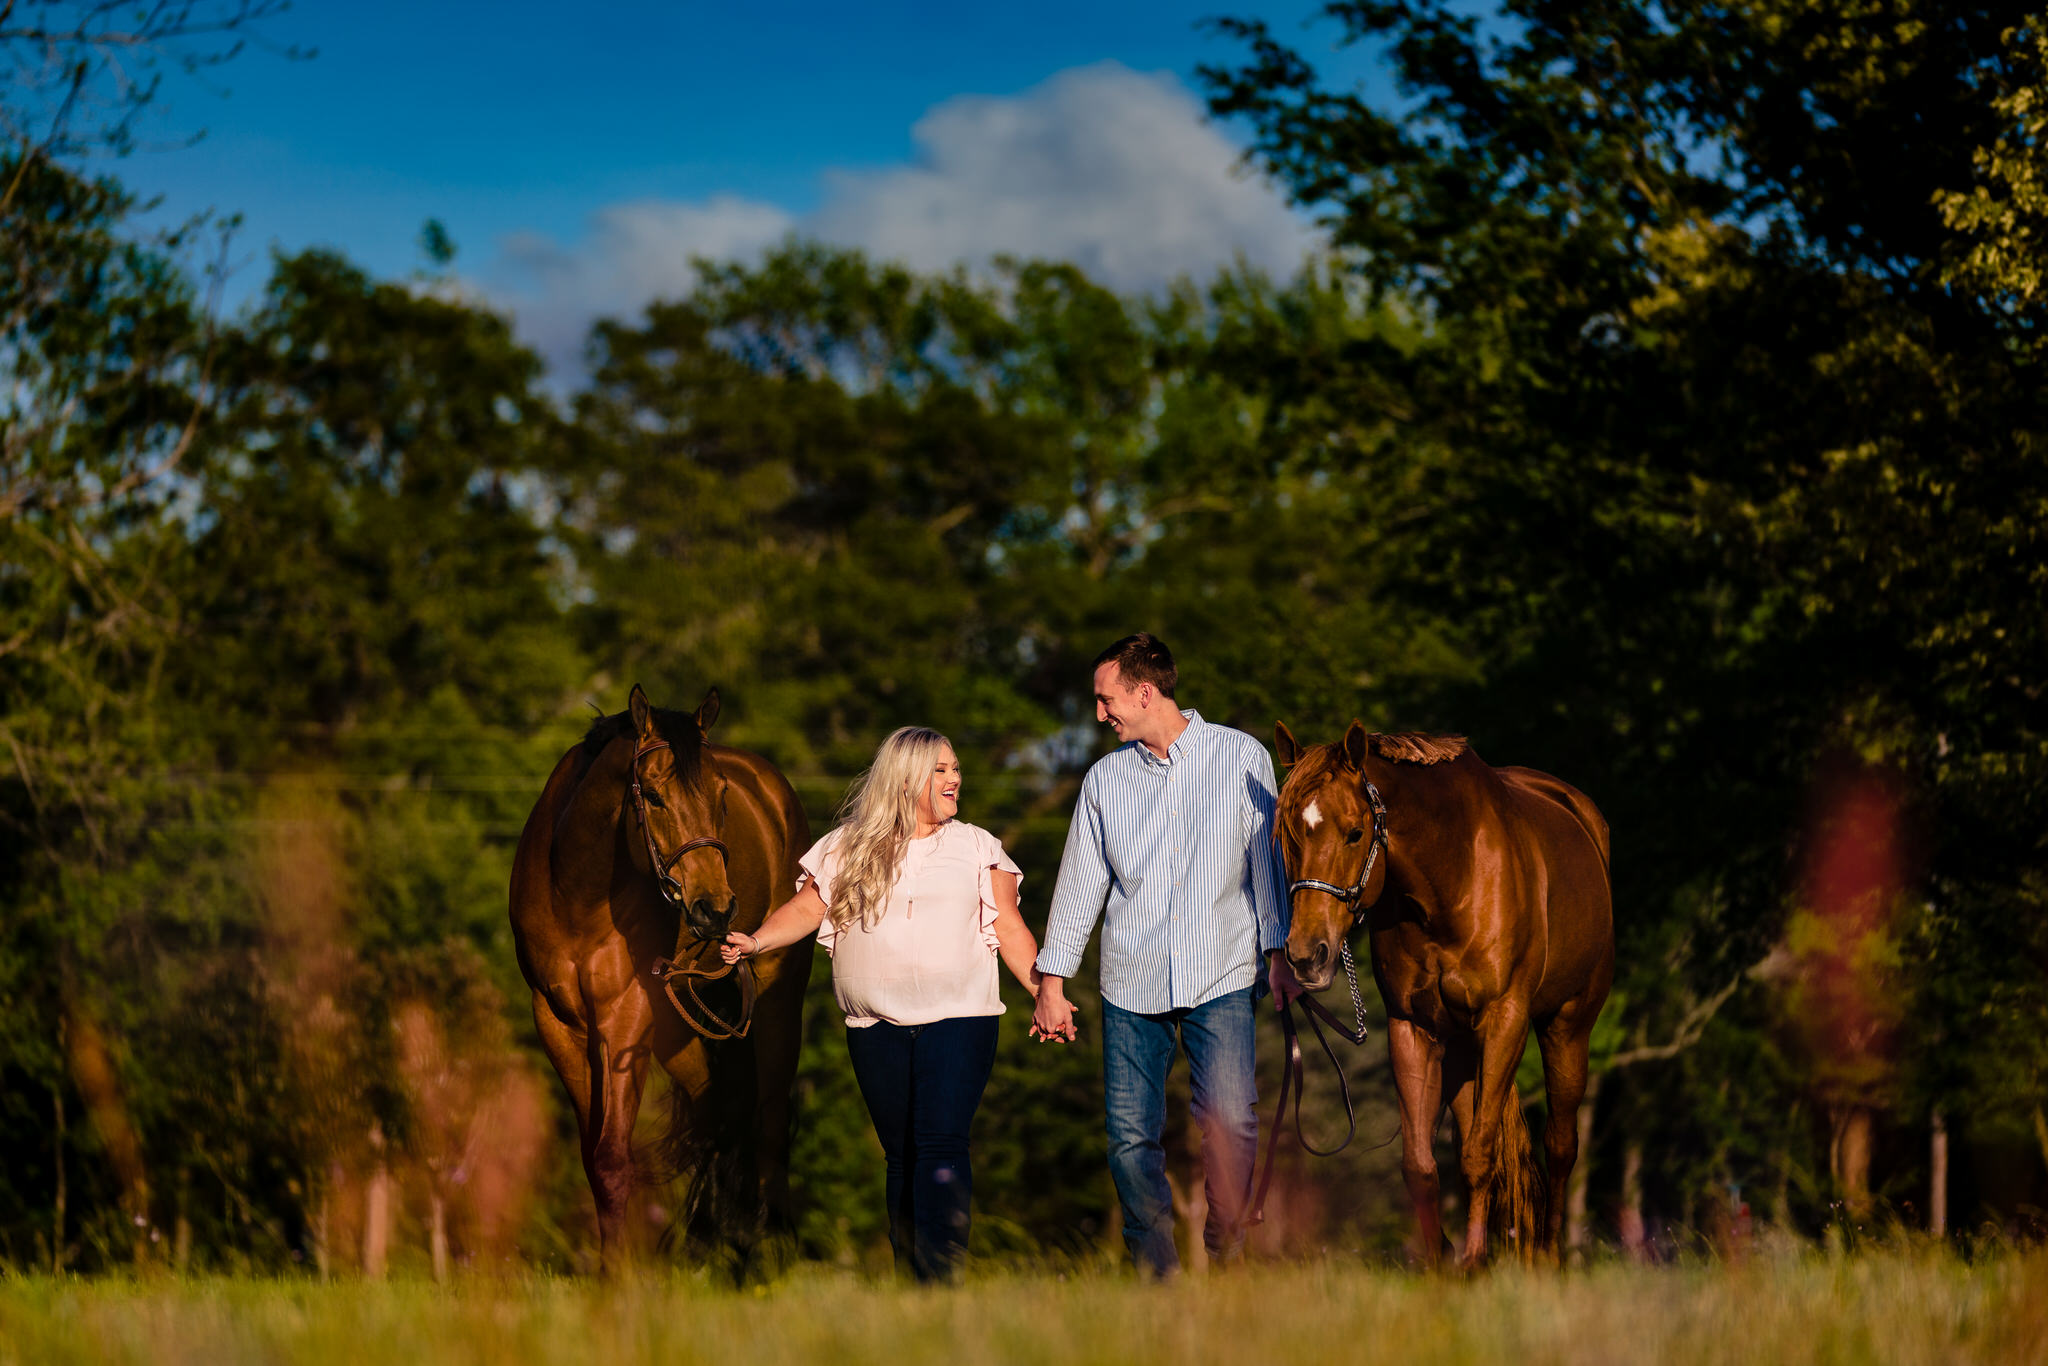 Nikki&Logan-Engagement-Cottonwood-Farm3.jpg